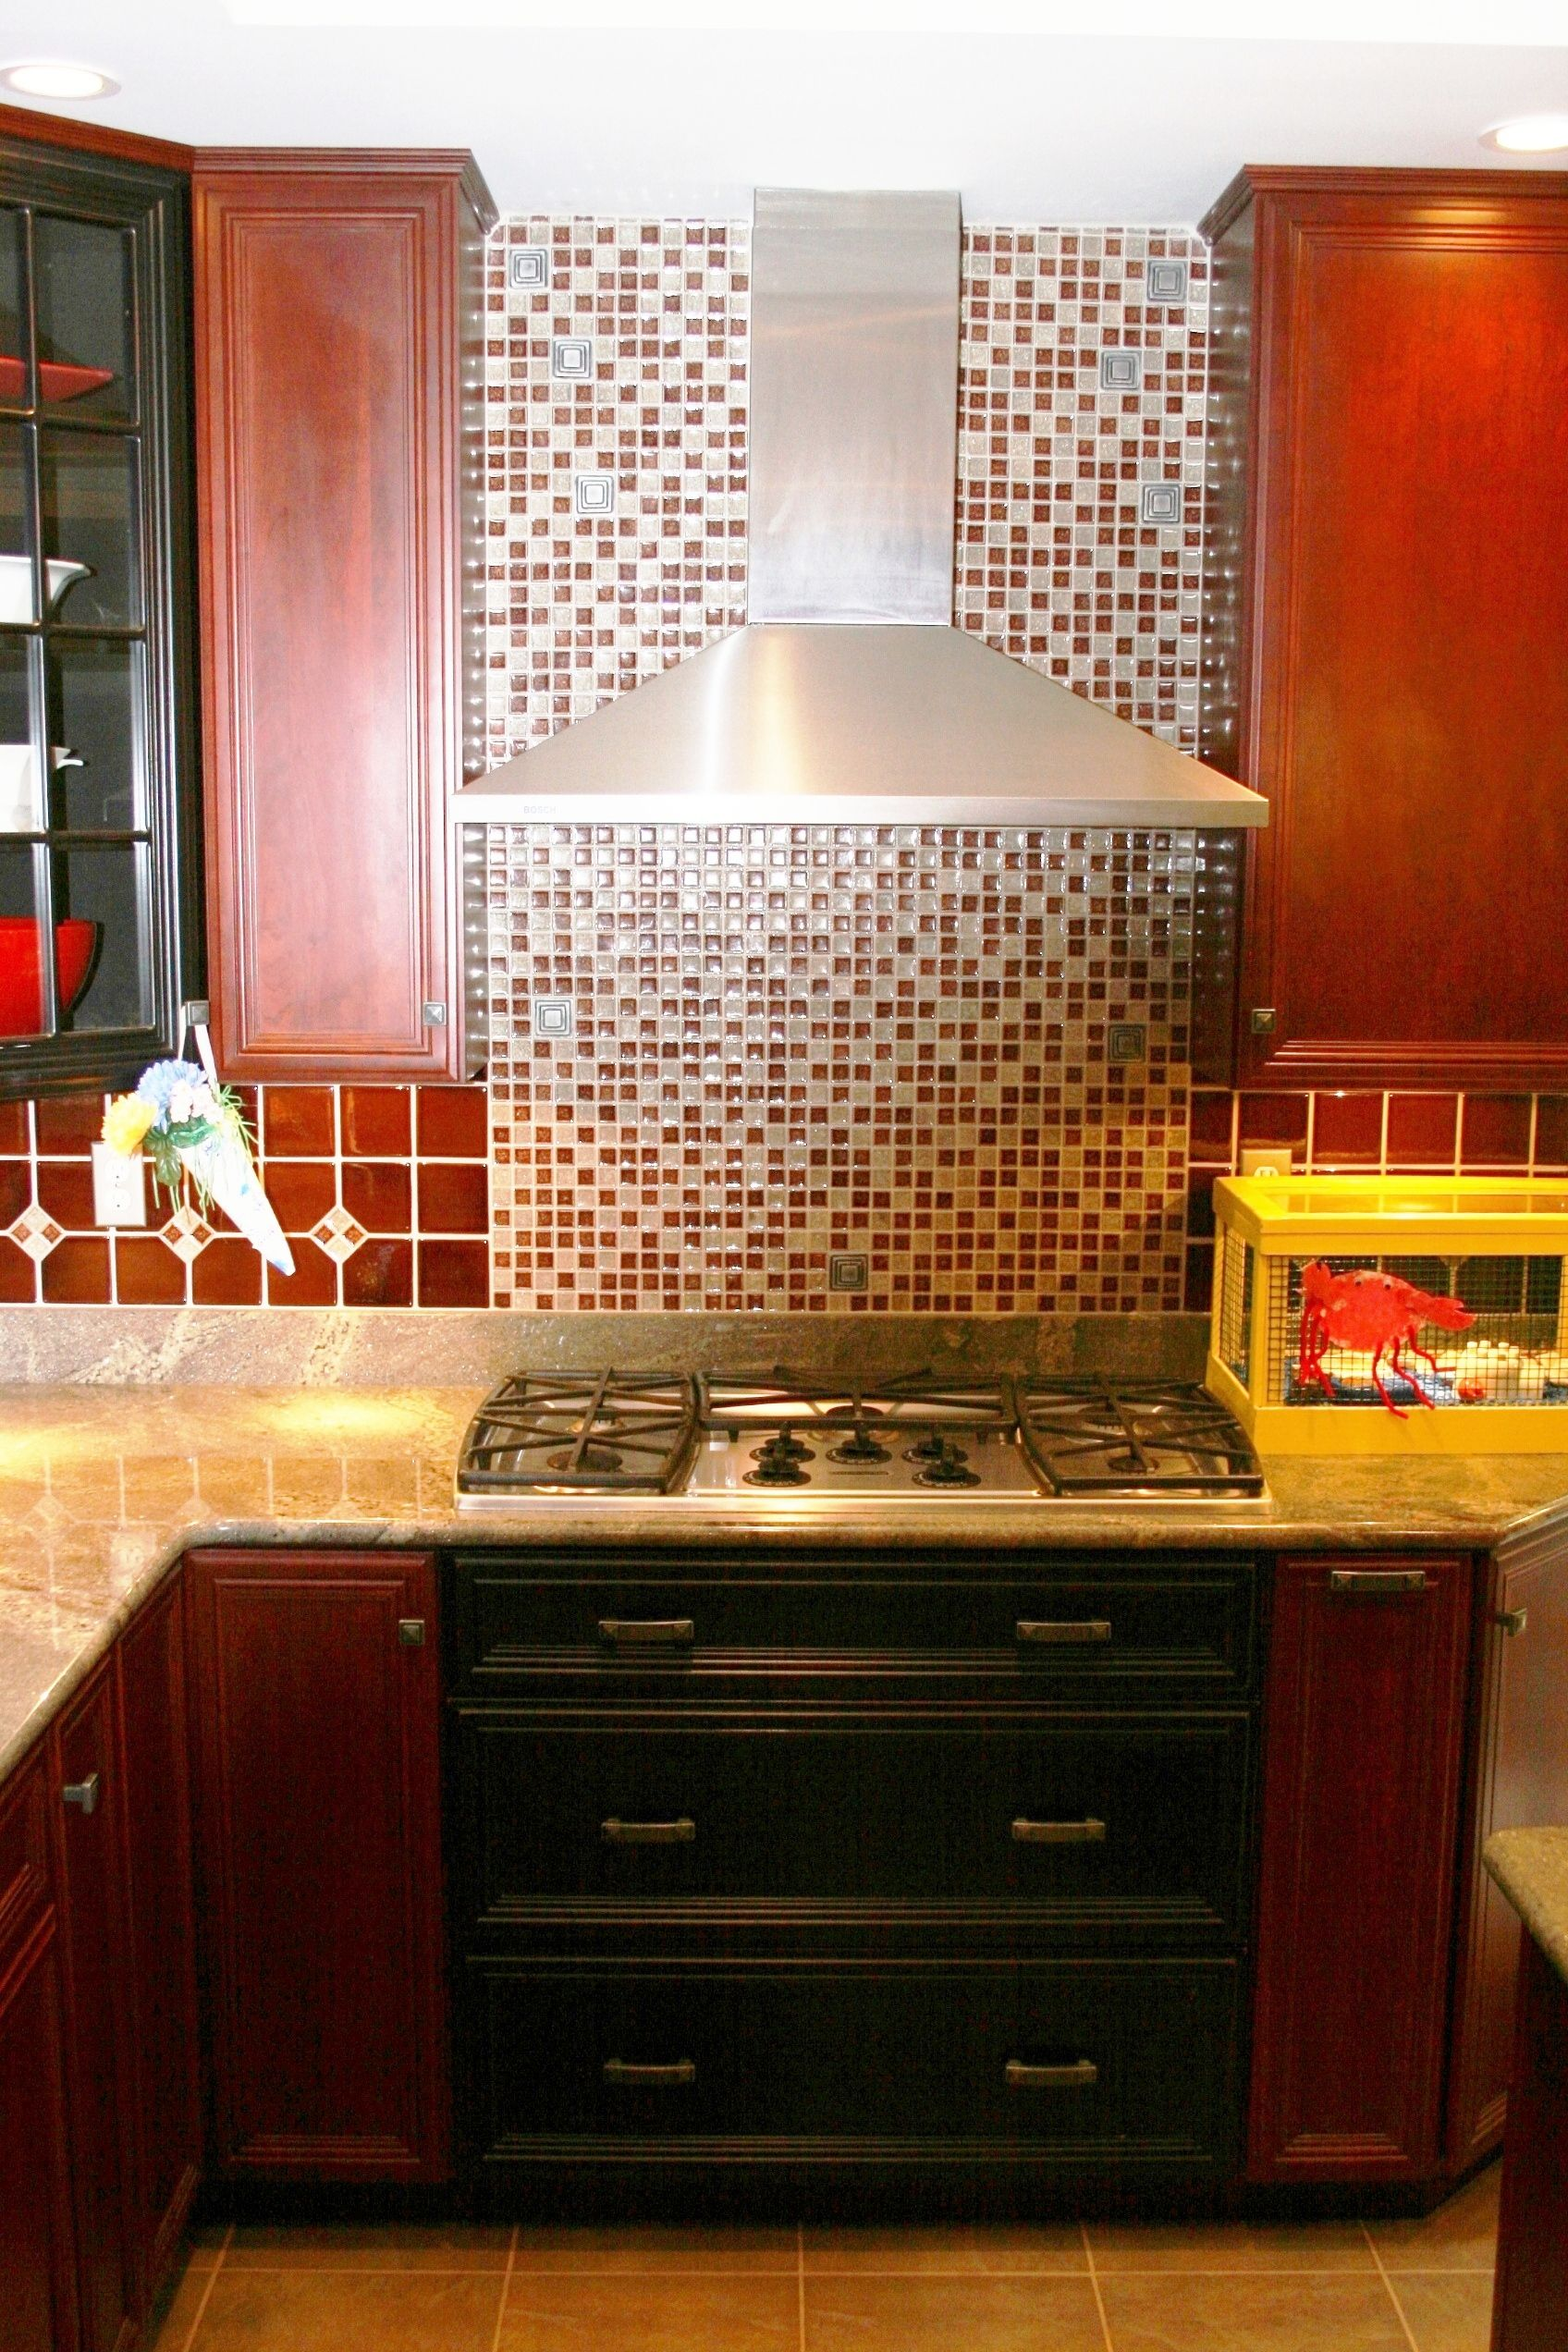 - Different Backsplash Behind Stove Than The Rest Of The Kitchen. I